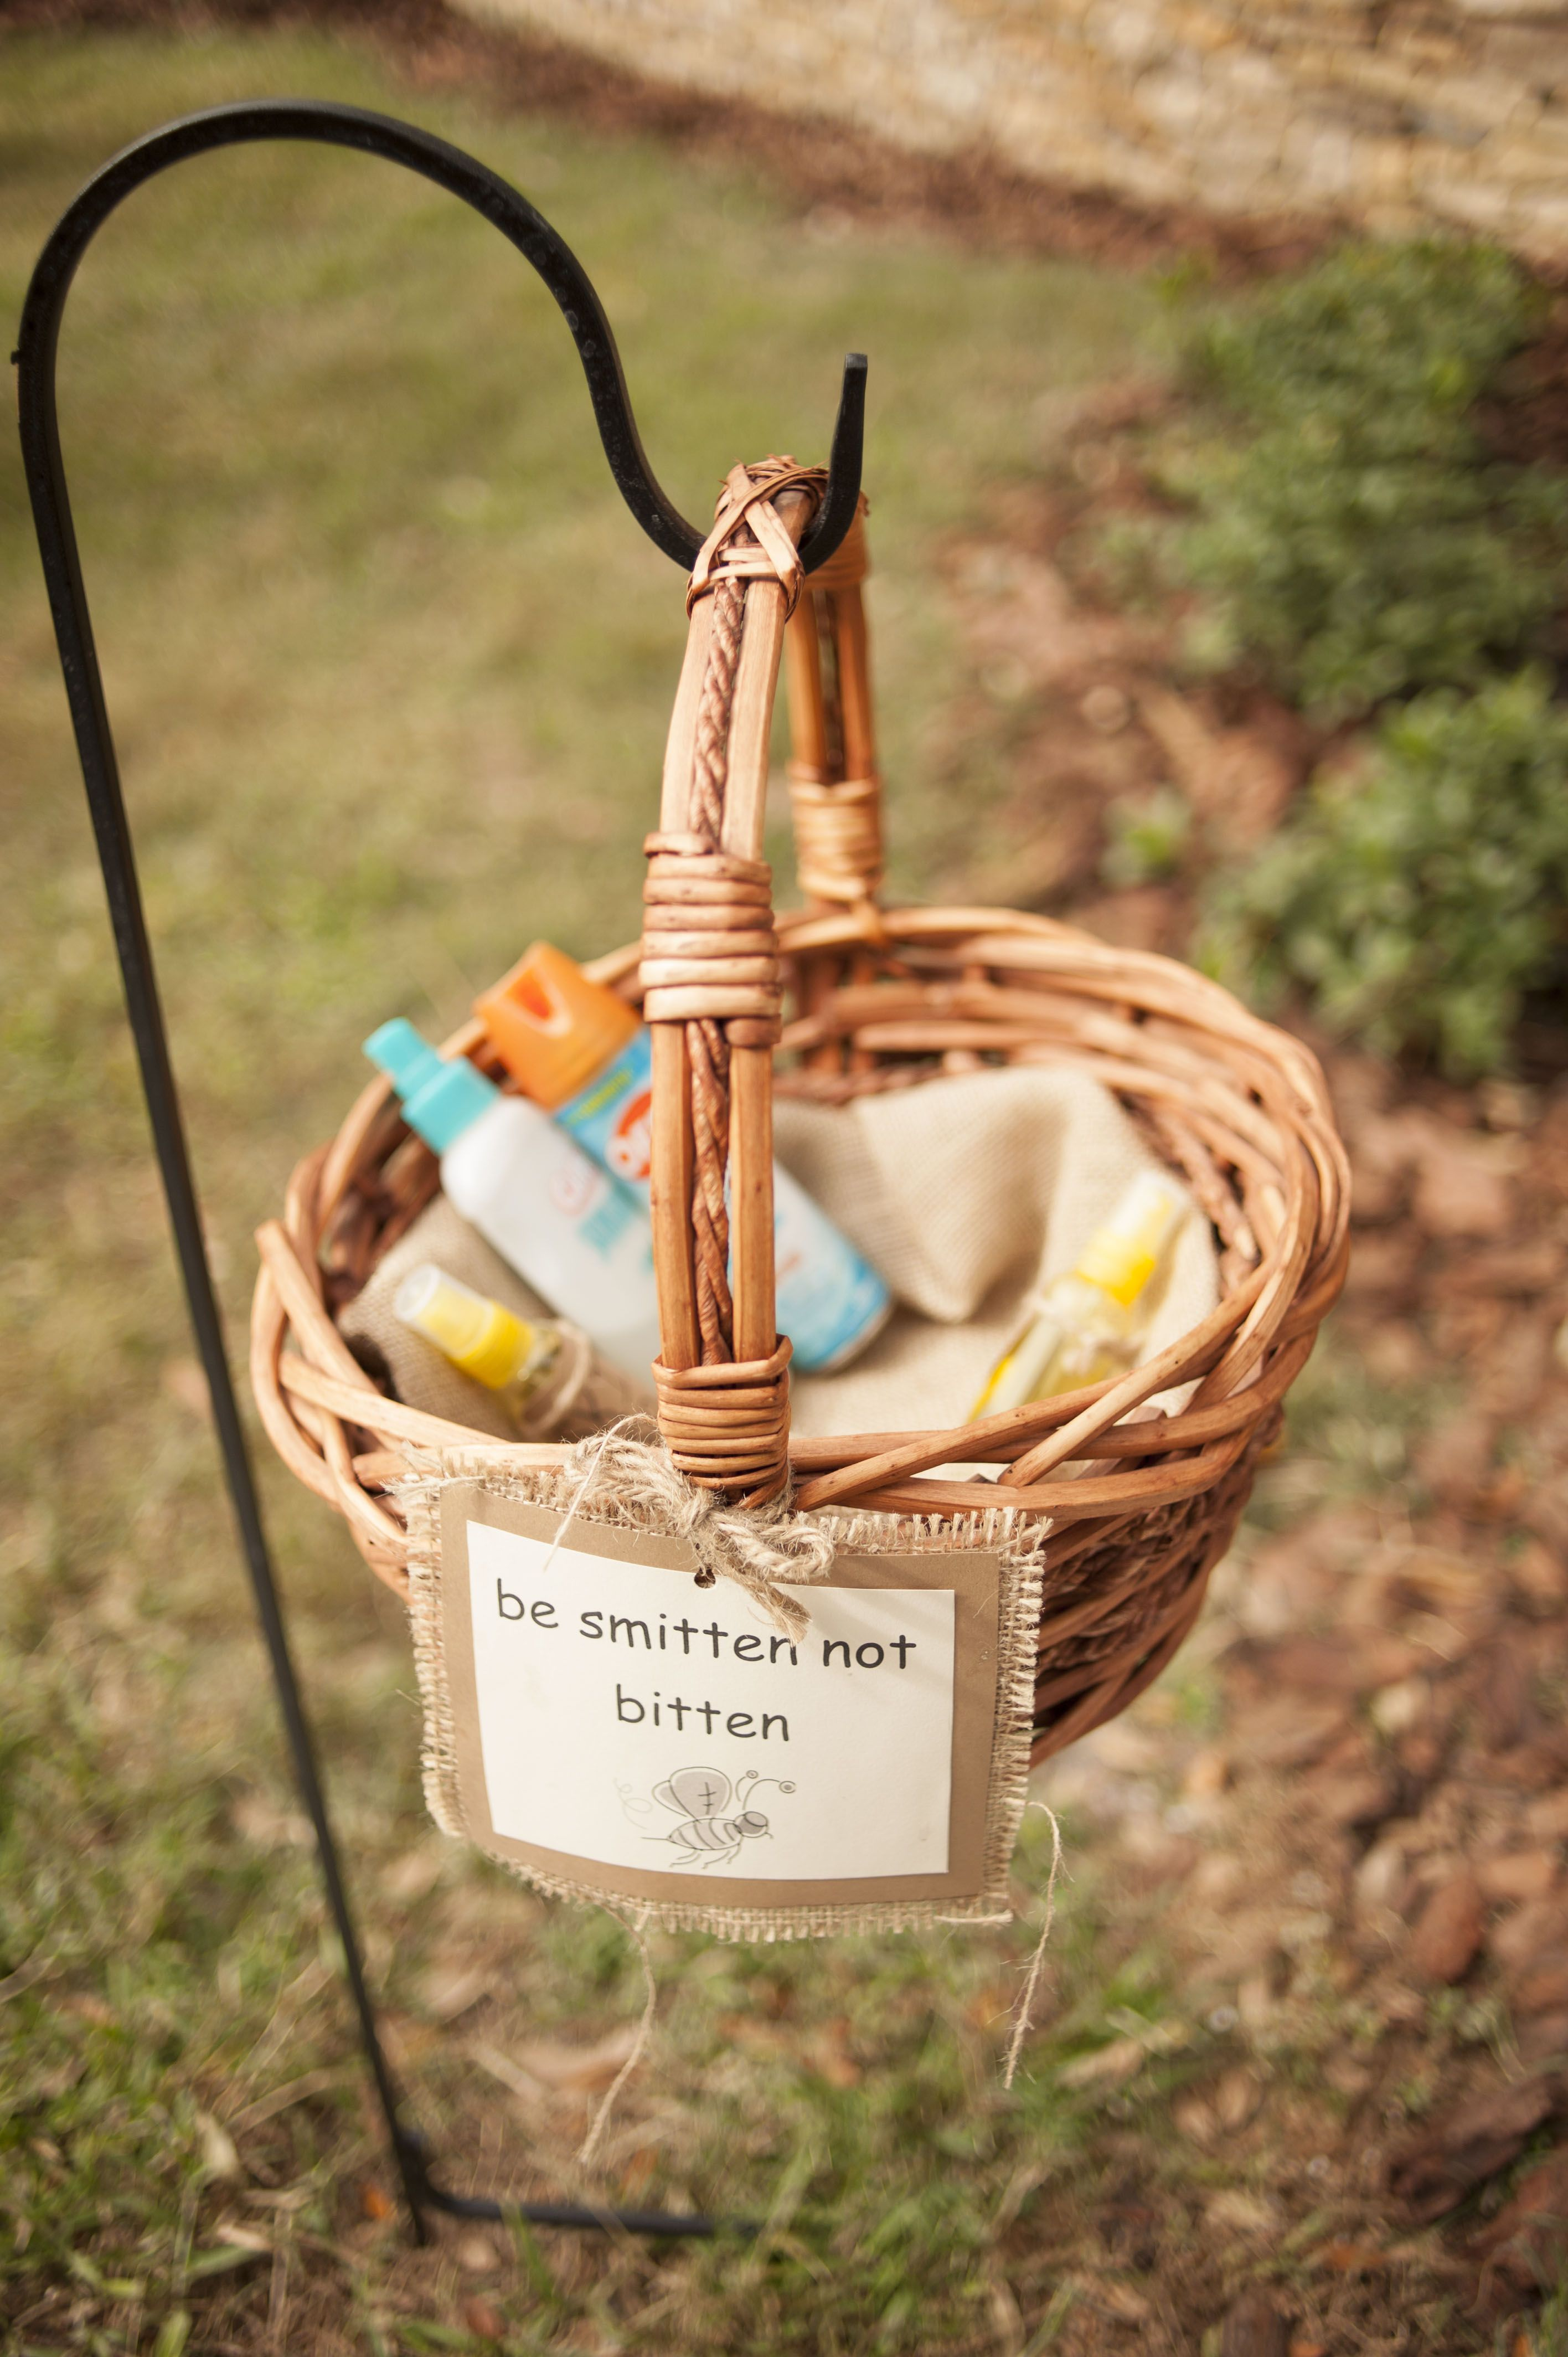 Diy outside wedding decorations  Bug spray for guests for outside weddings  Engagement Party Ideas